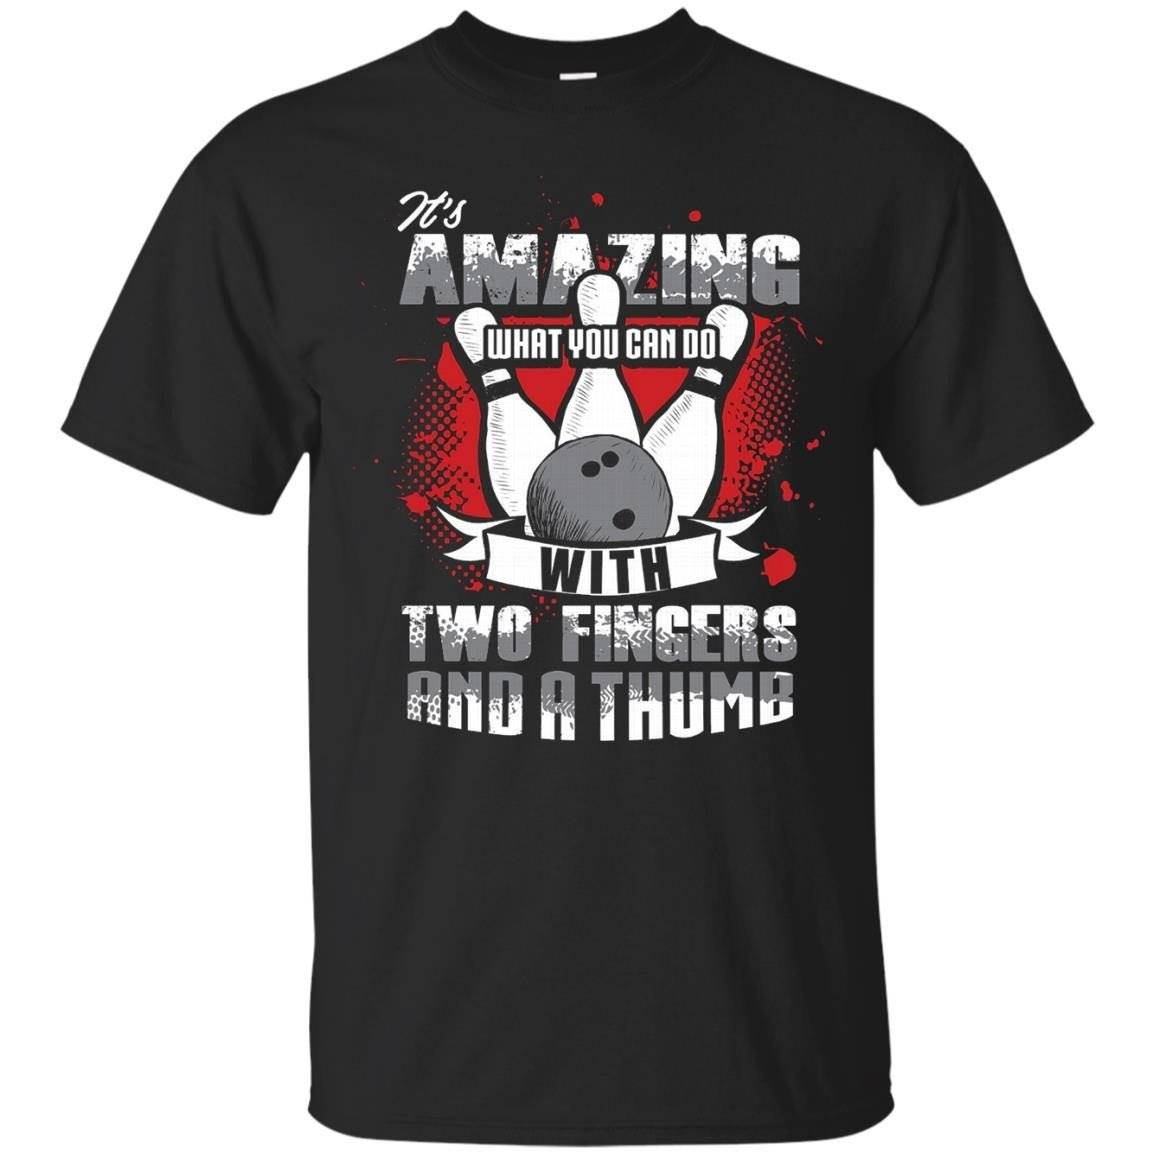 Bowling Fun T-Shirt WHAT CAN YOU DO WITH TWO FINGERS THUMB